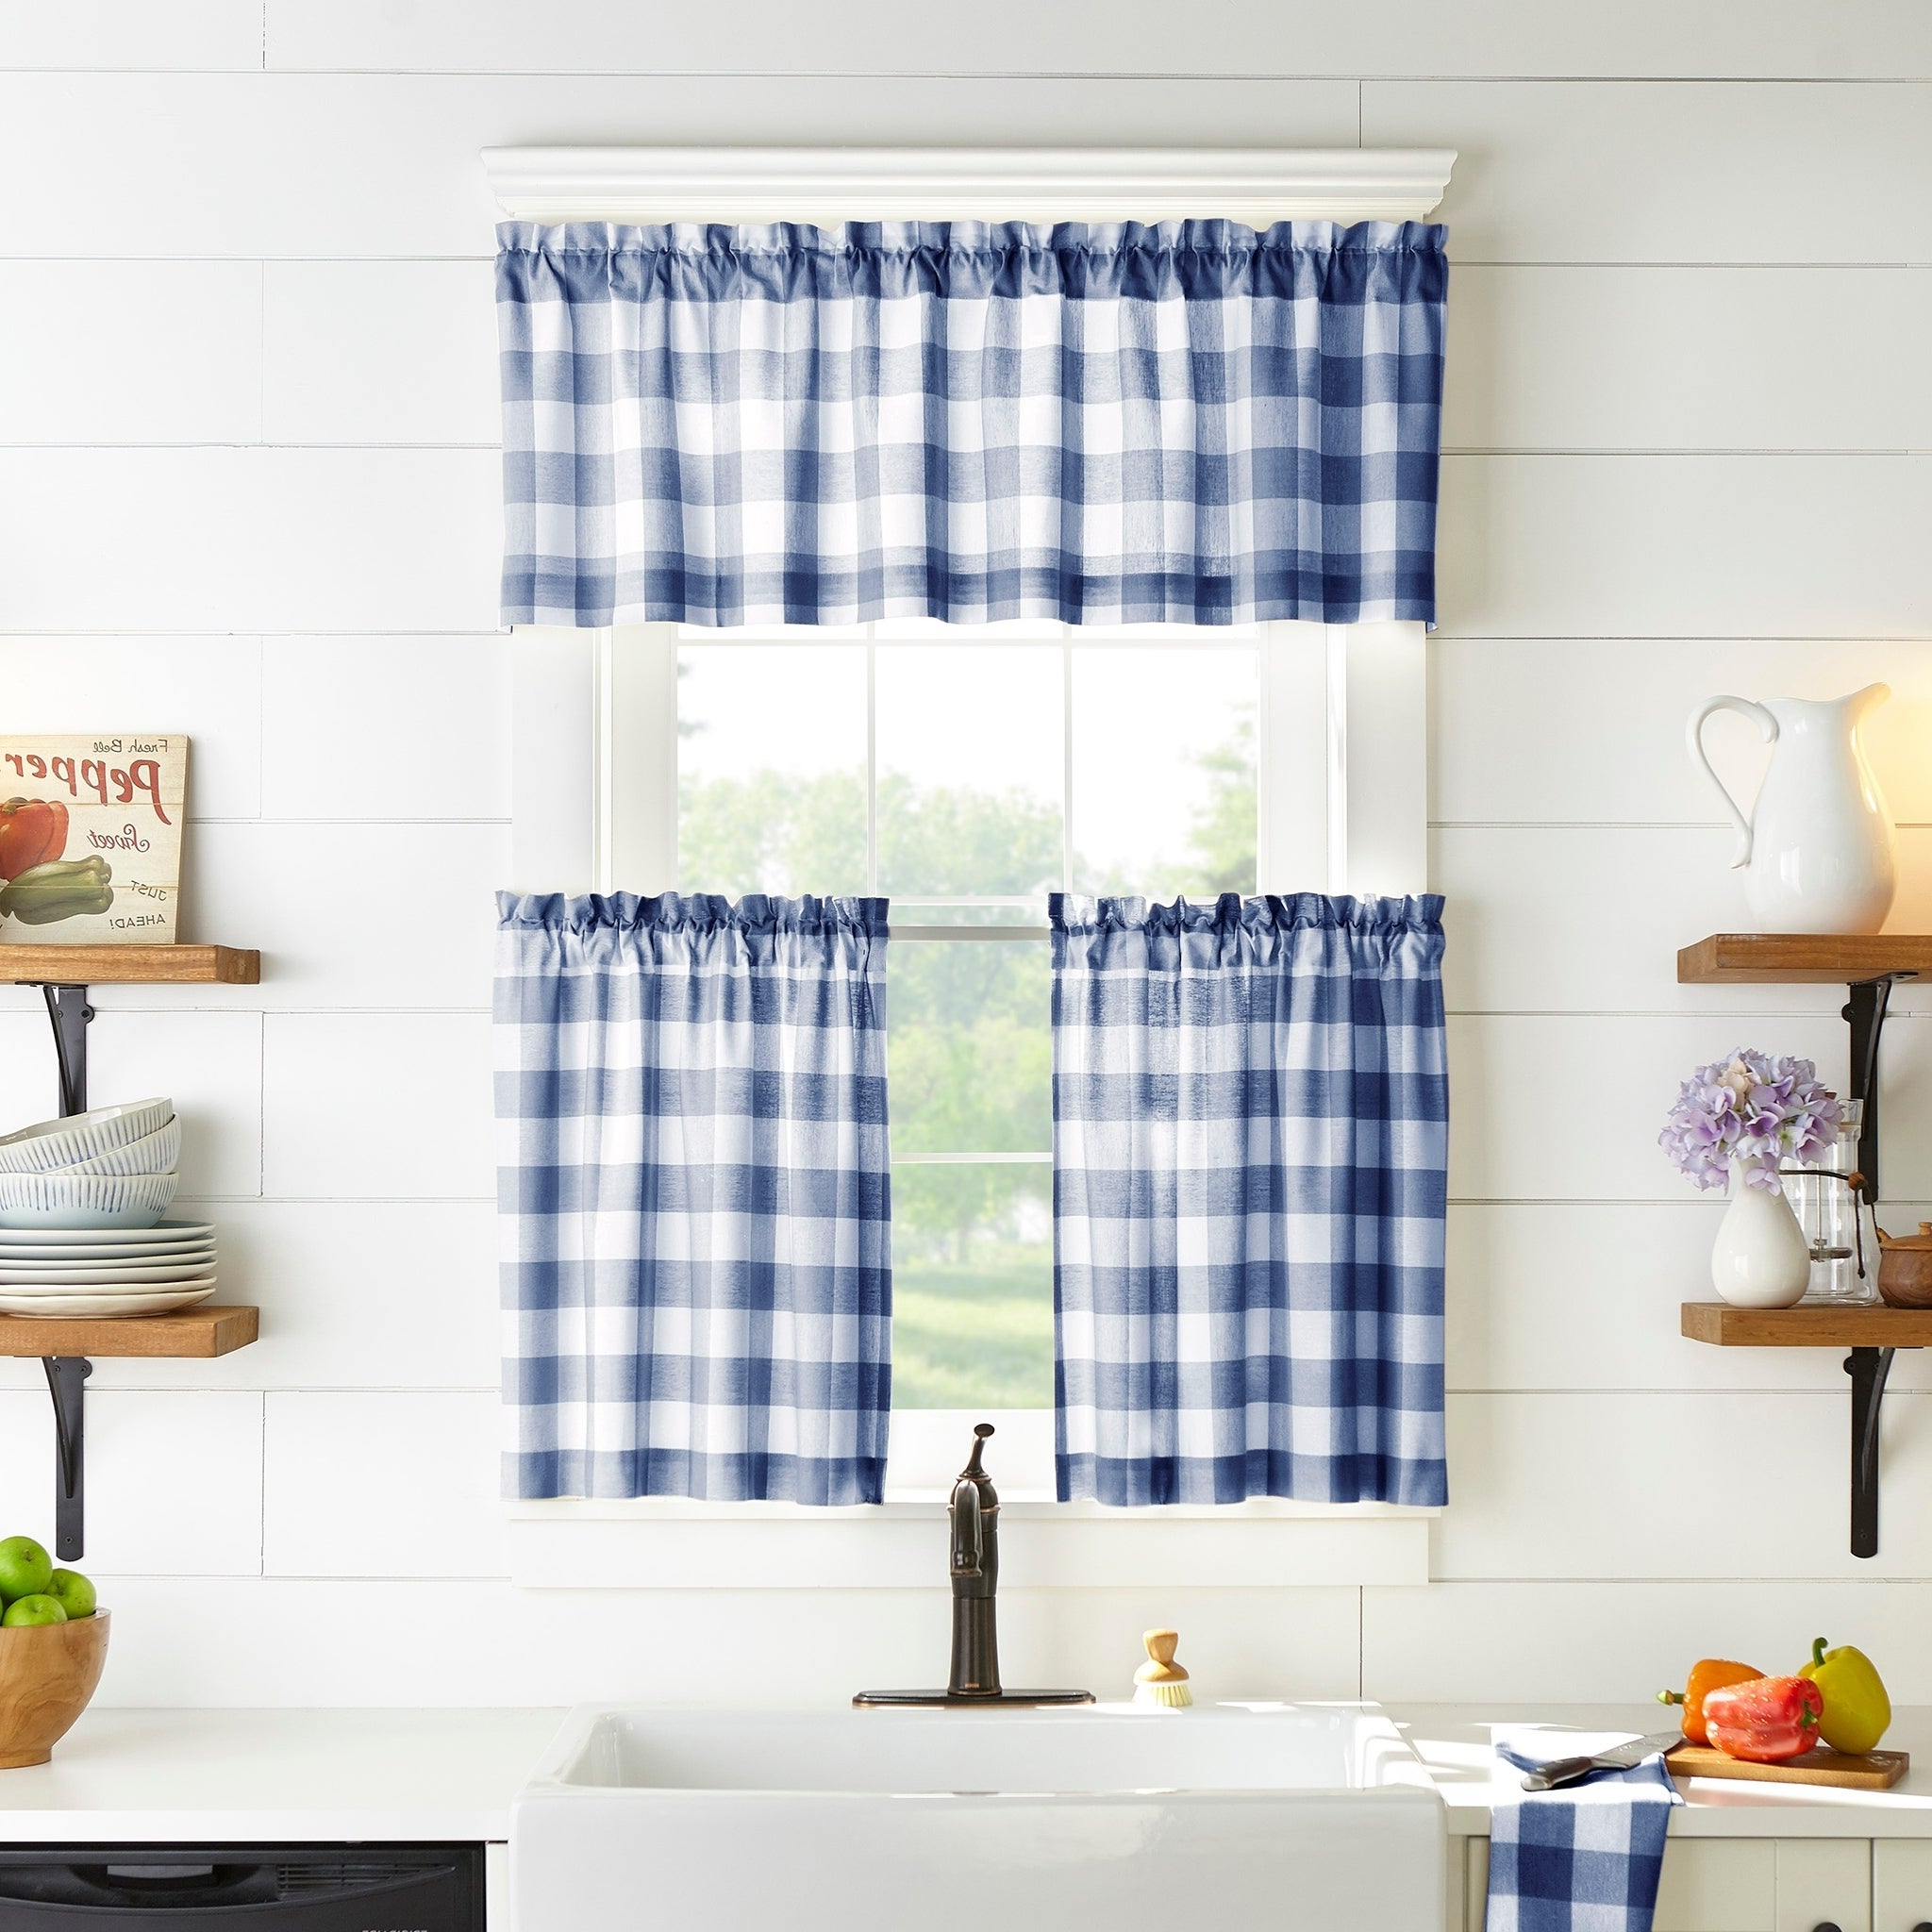 Famous The Gray Barn Emily Gulch Buffalo Check Kitchen Window Tier Set Within Classic Navy Cotton Blend Buffalo Check Kitchen Curtain Sets (View 18 of 20)